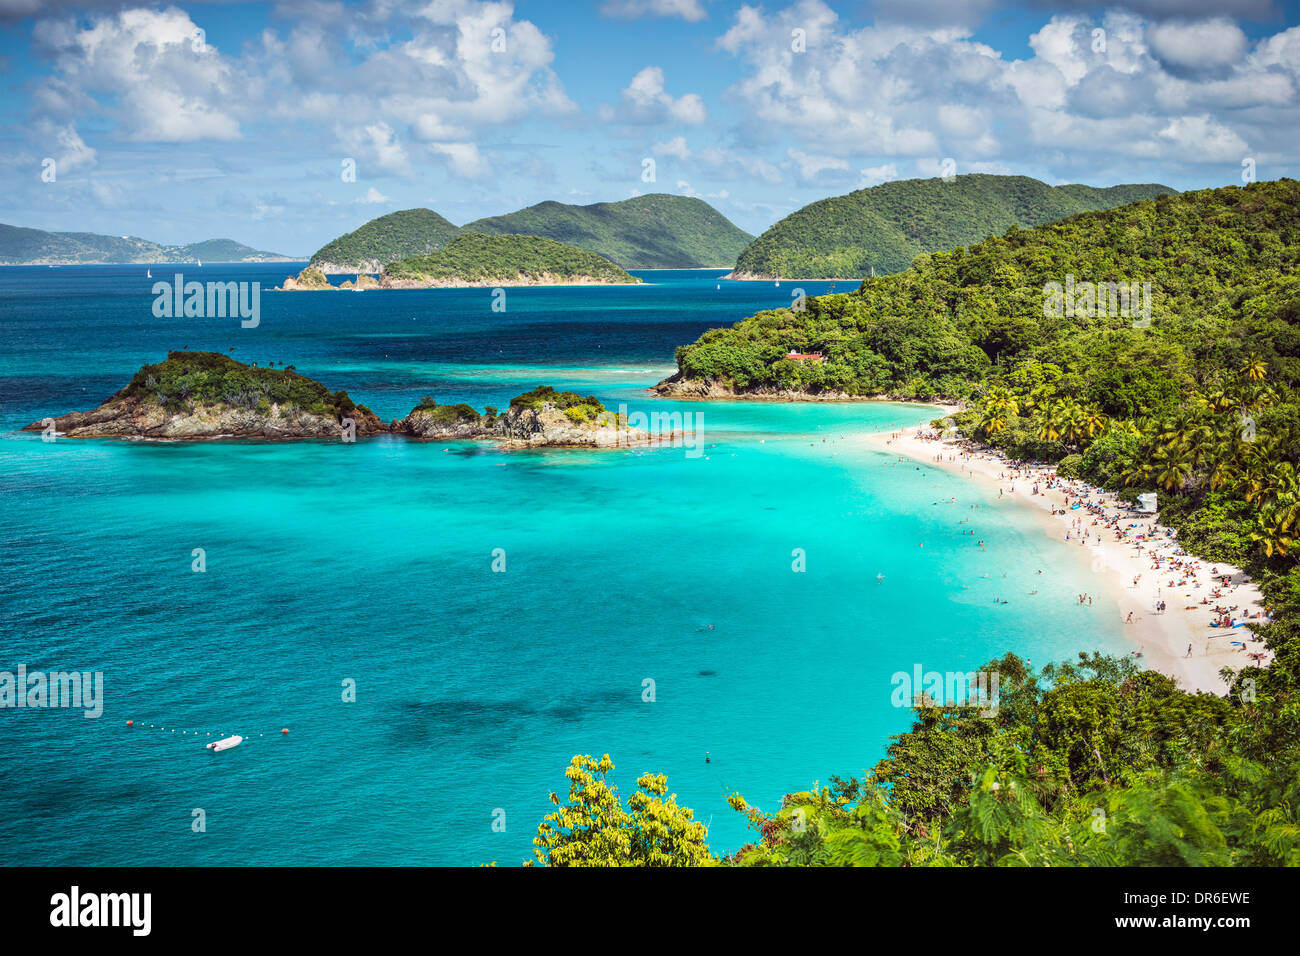 Trunk Bay, St John, United States Virgin Islands. - Stock Image